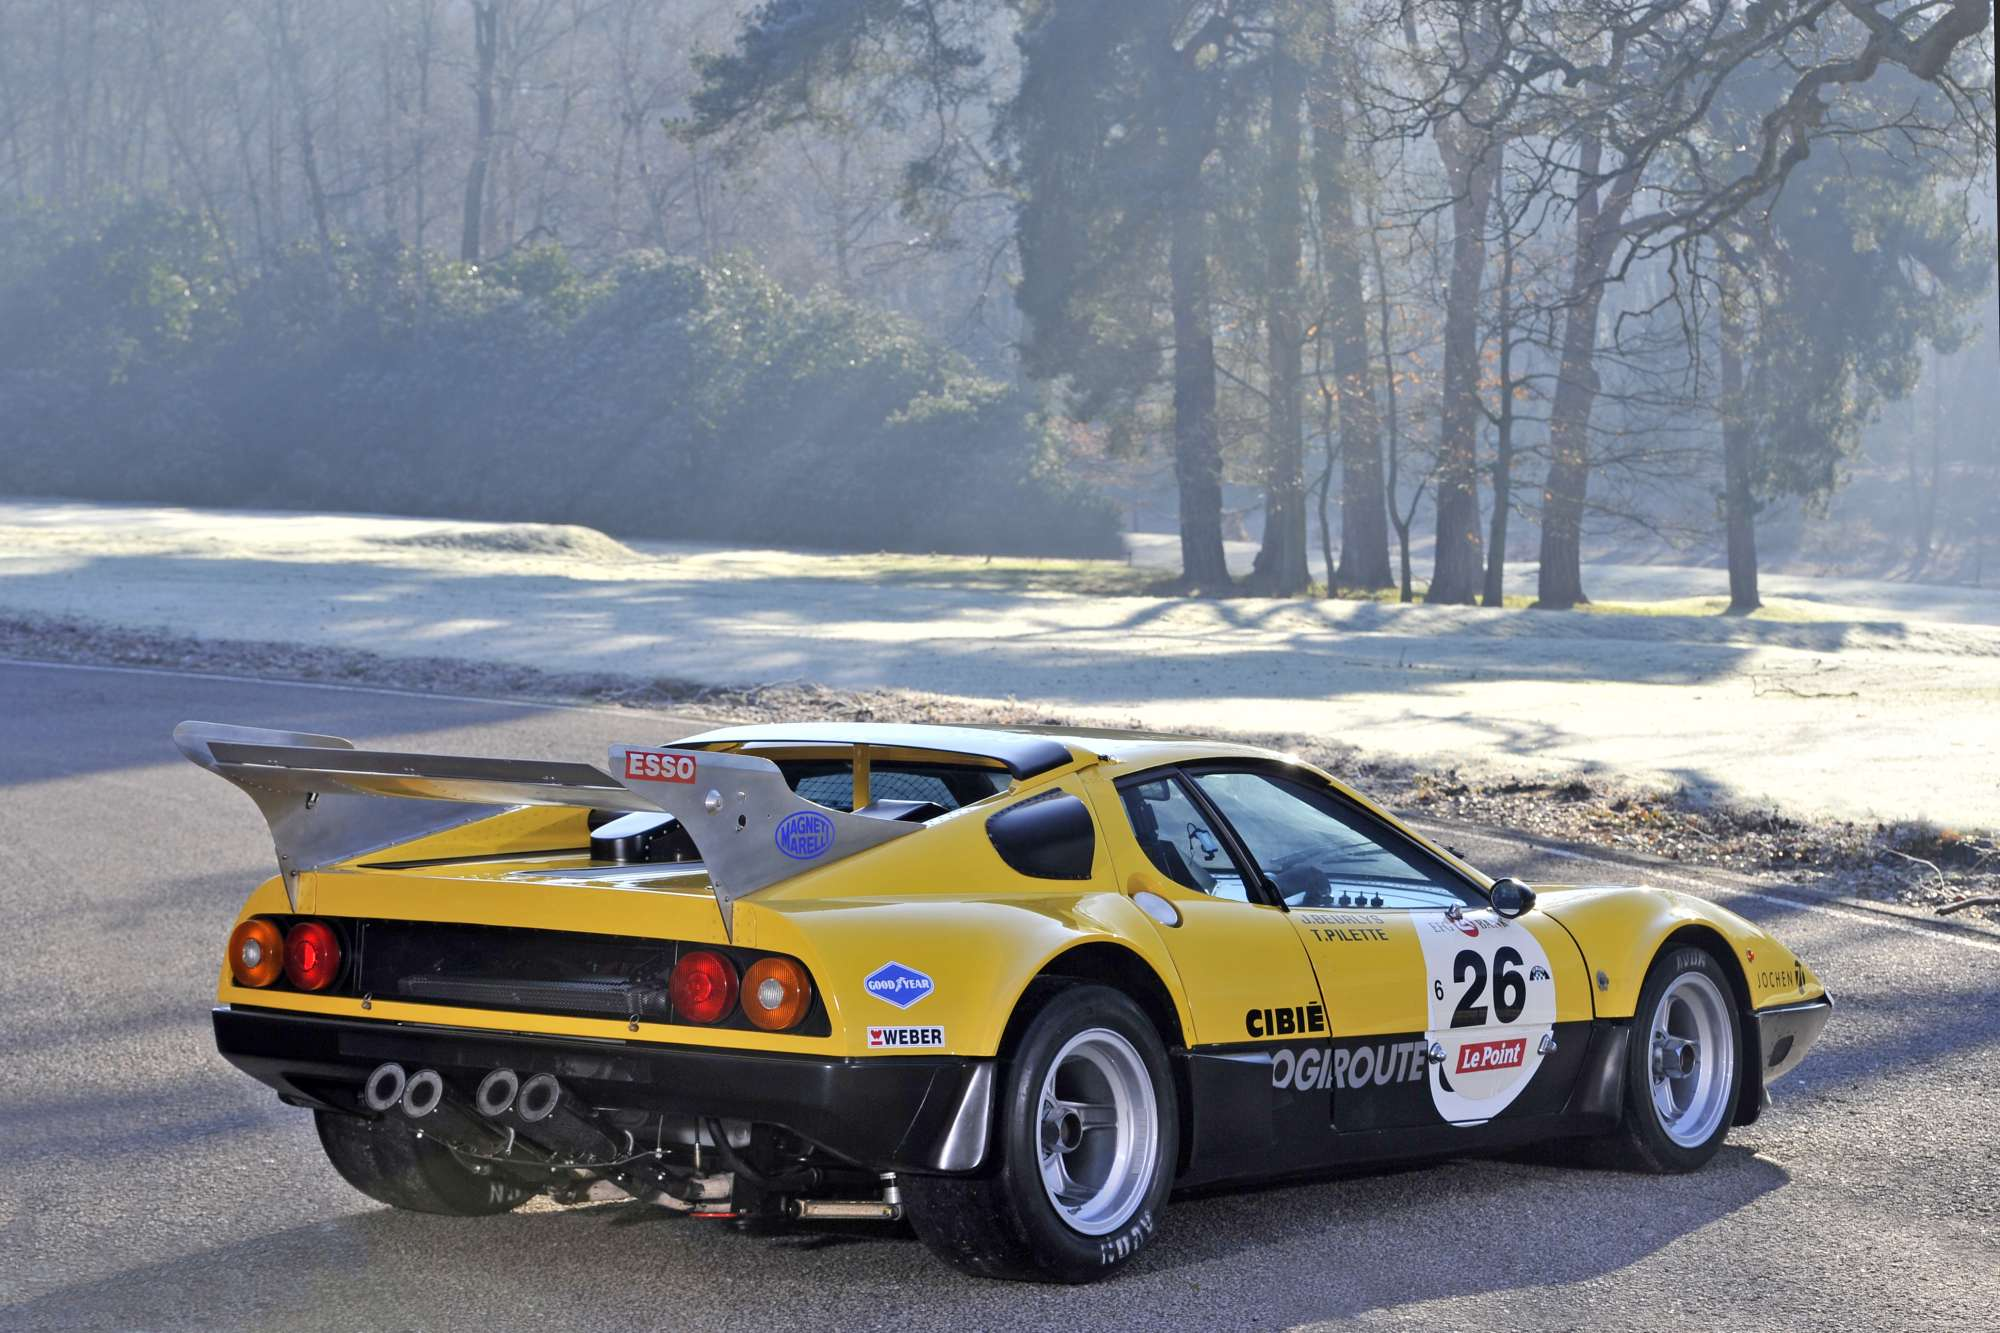 1978 ferrari 512 bb ex ecurie francorchamps previously